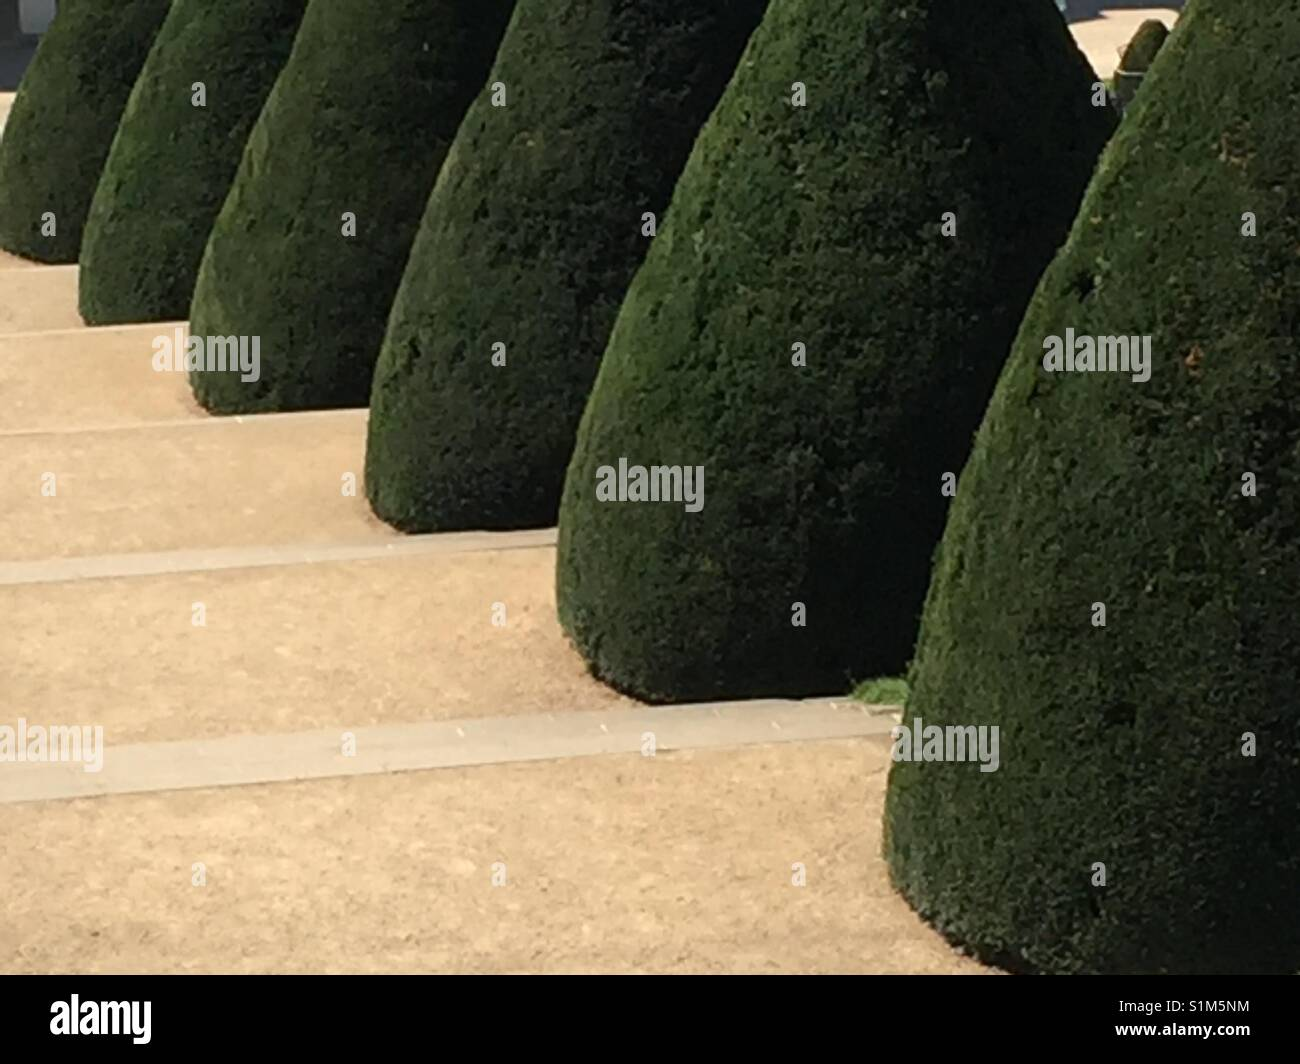 Green topiary yew trees along sandy steps.  Grünes Topiari entlang sandige Treppen. - Stock Image